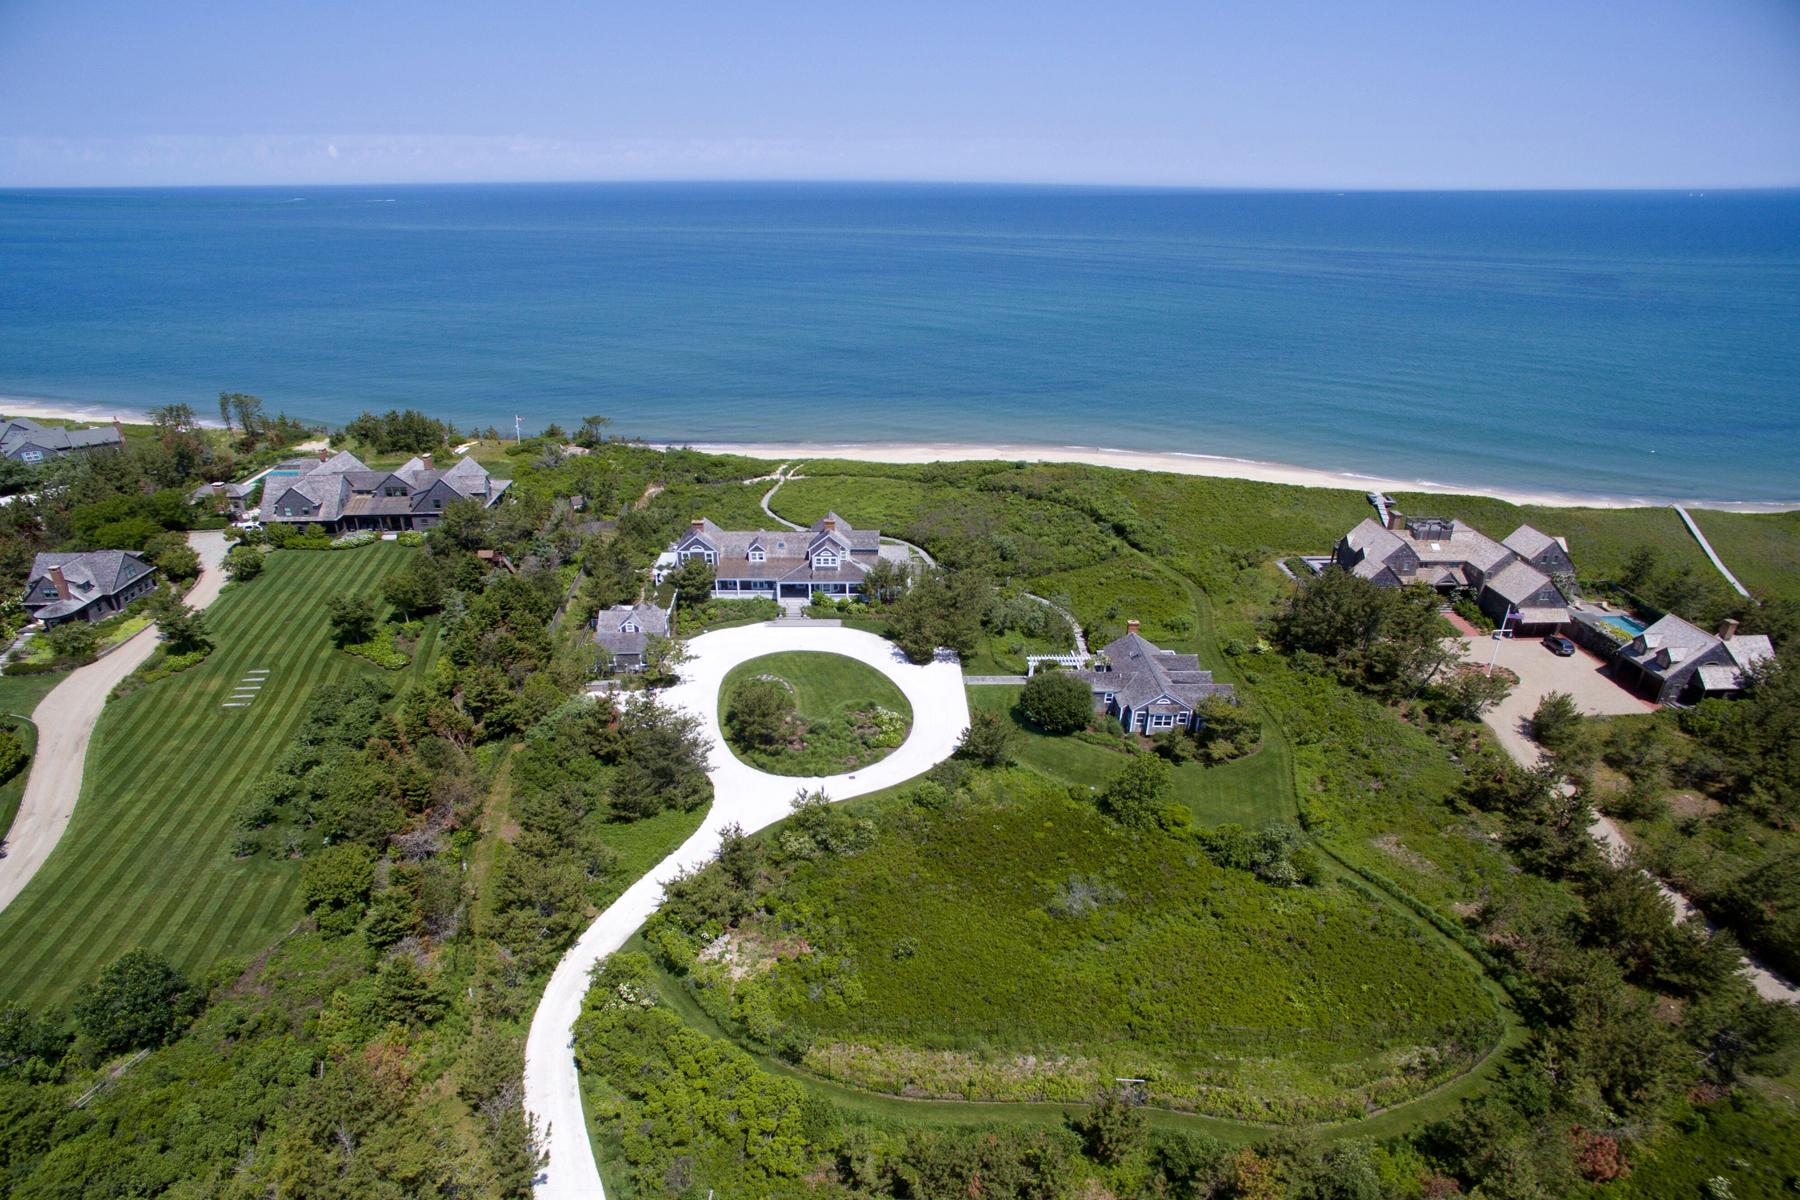 Casa Unifamiliar por un Venta en Spectacular Oceanfront Dionis! 119 Eel Point Road 119 R Eel Point Road Nantucket, Massachusetts, 02554 Estados Unidos